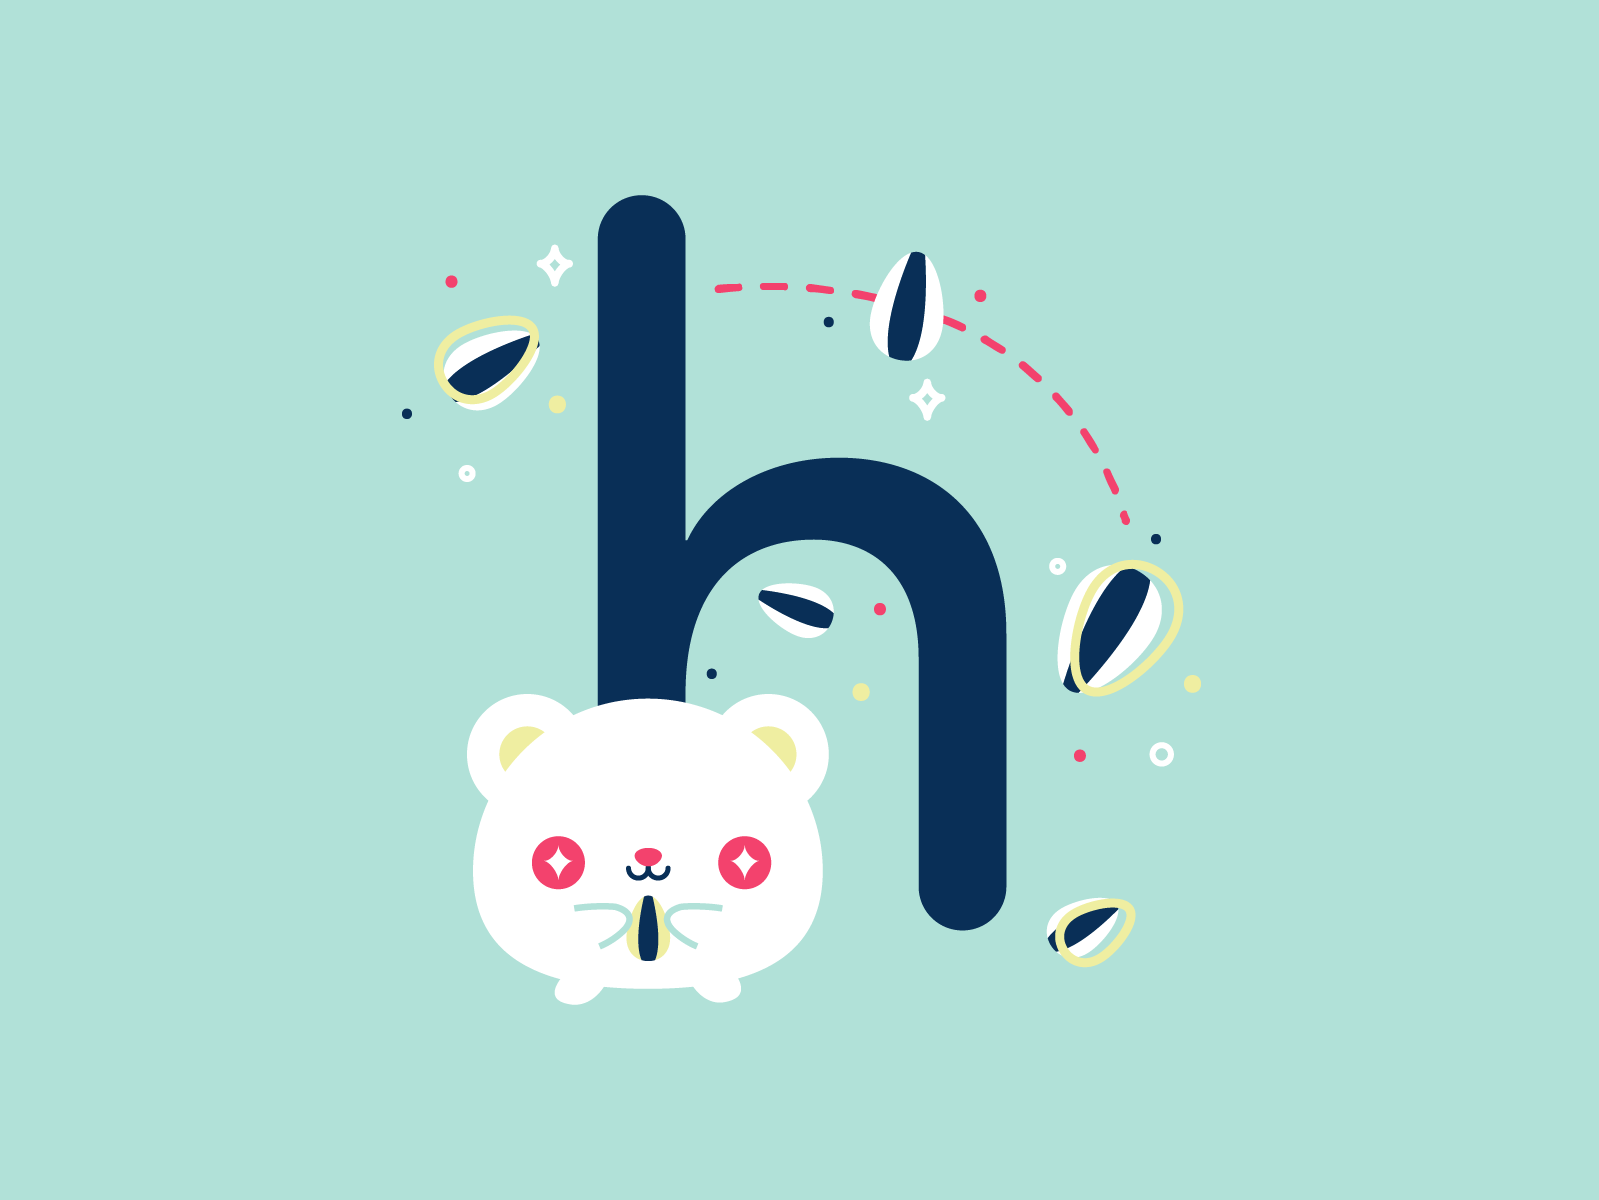 H hamster 36daysoftype 26daysoftype cute flat illustration vector